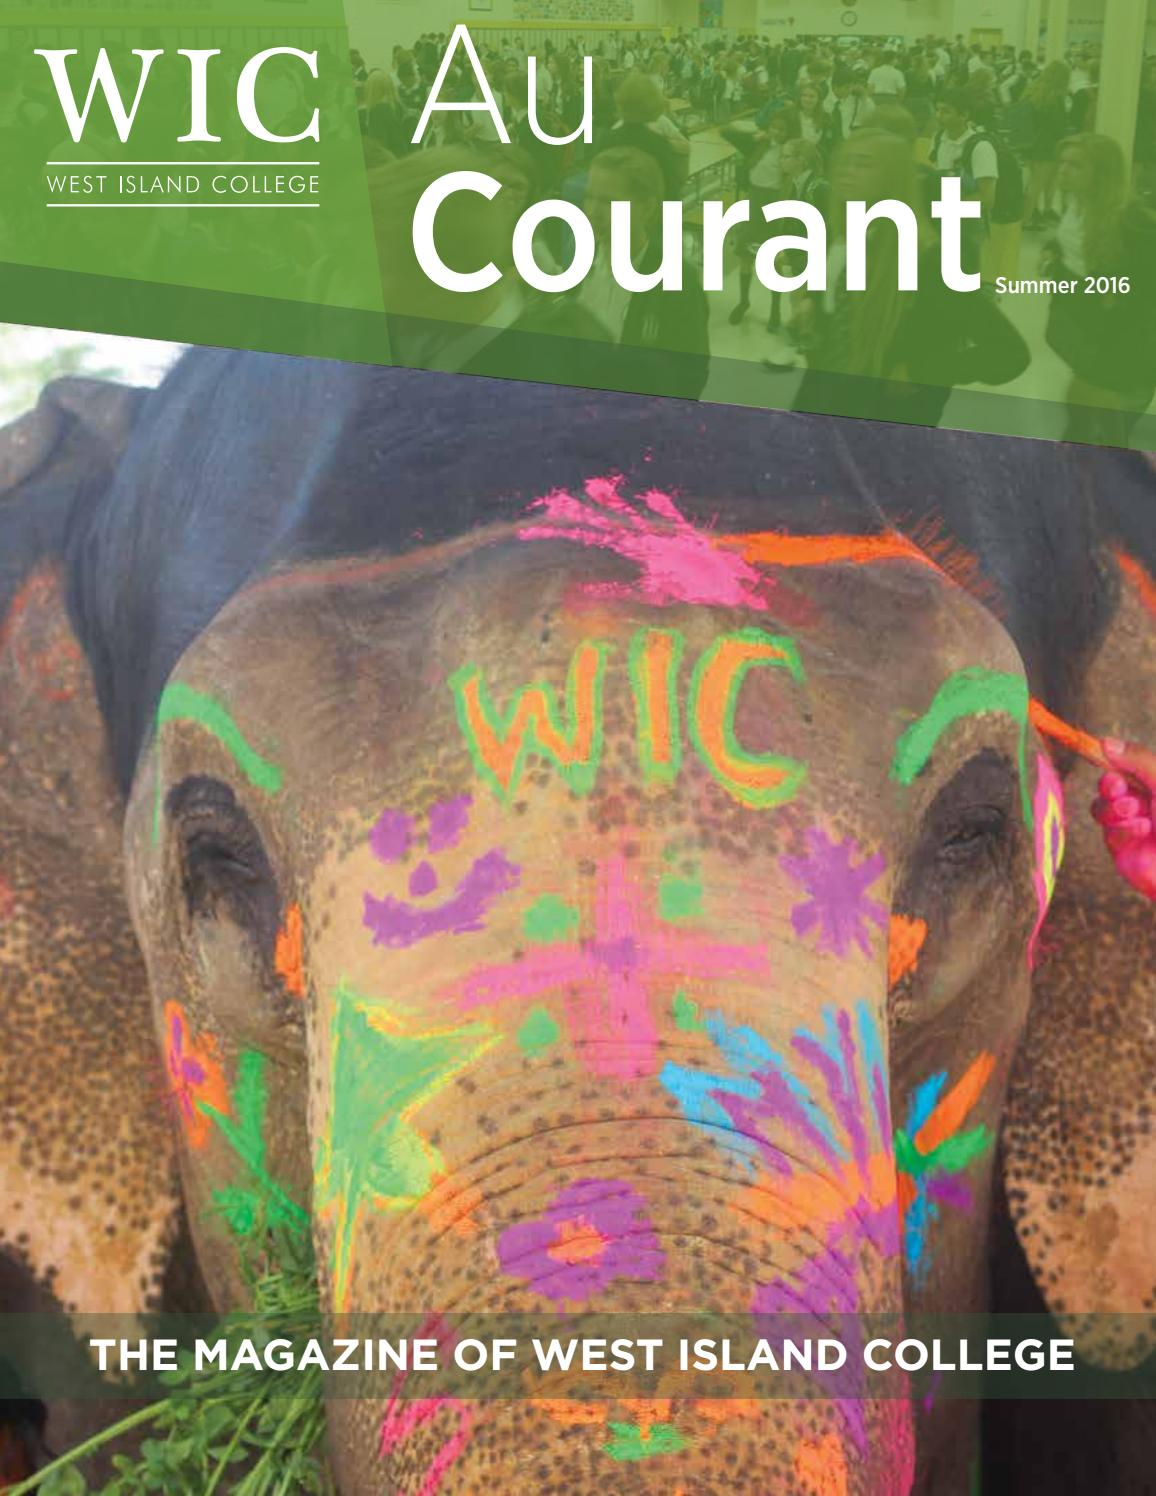 wic au courant summer 2016 by west island college issuu